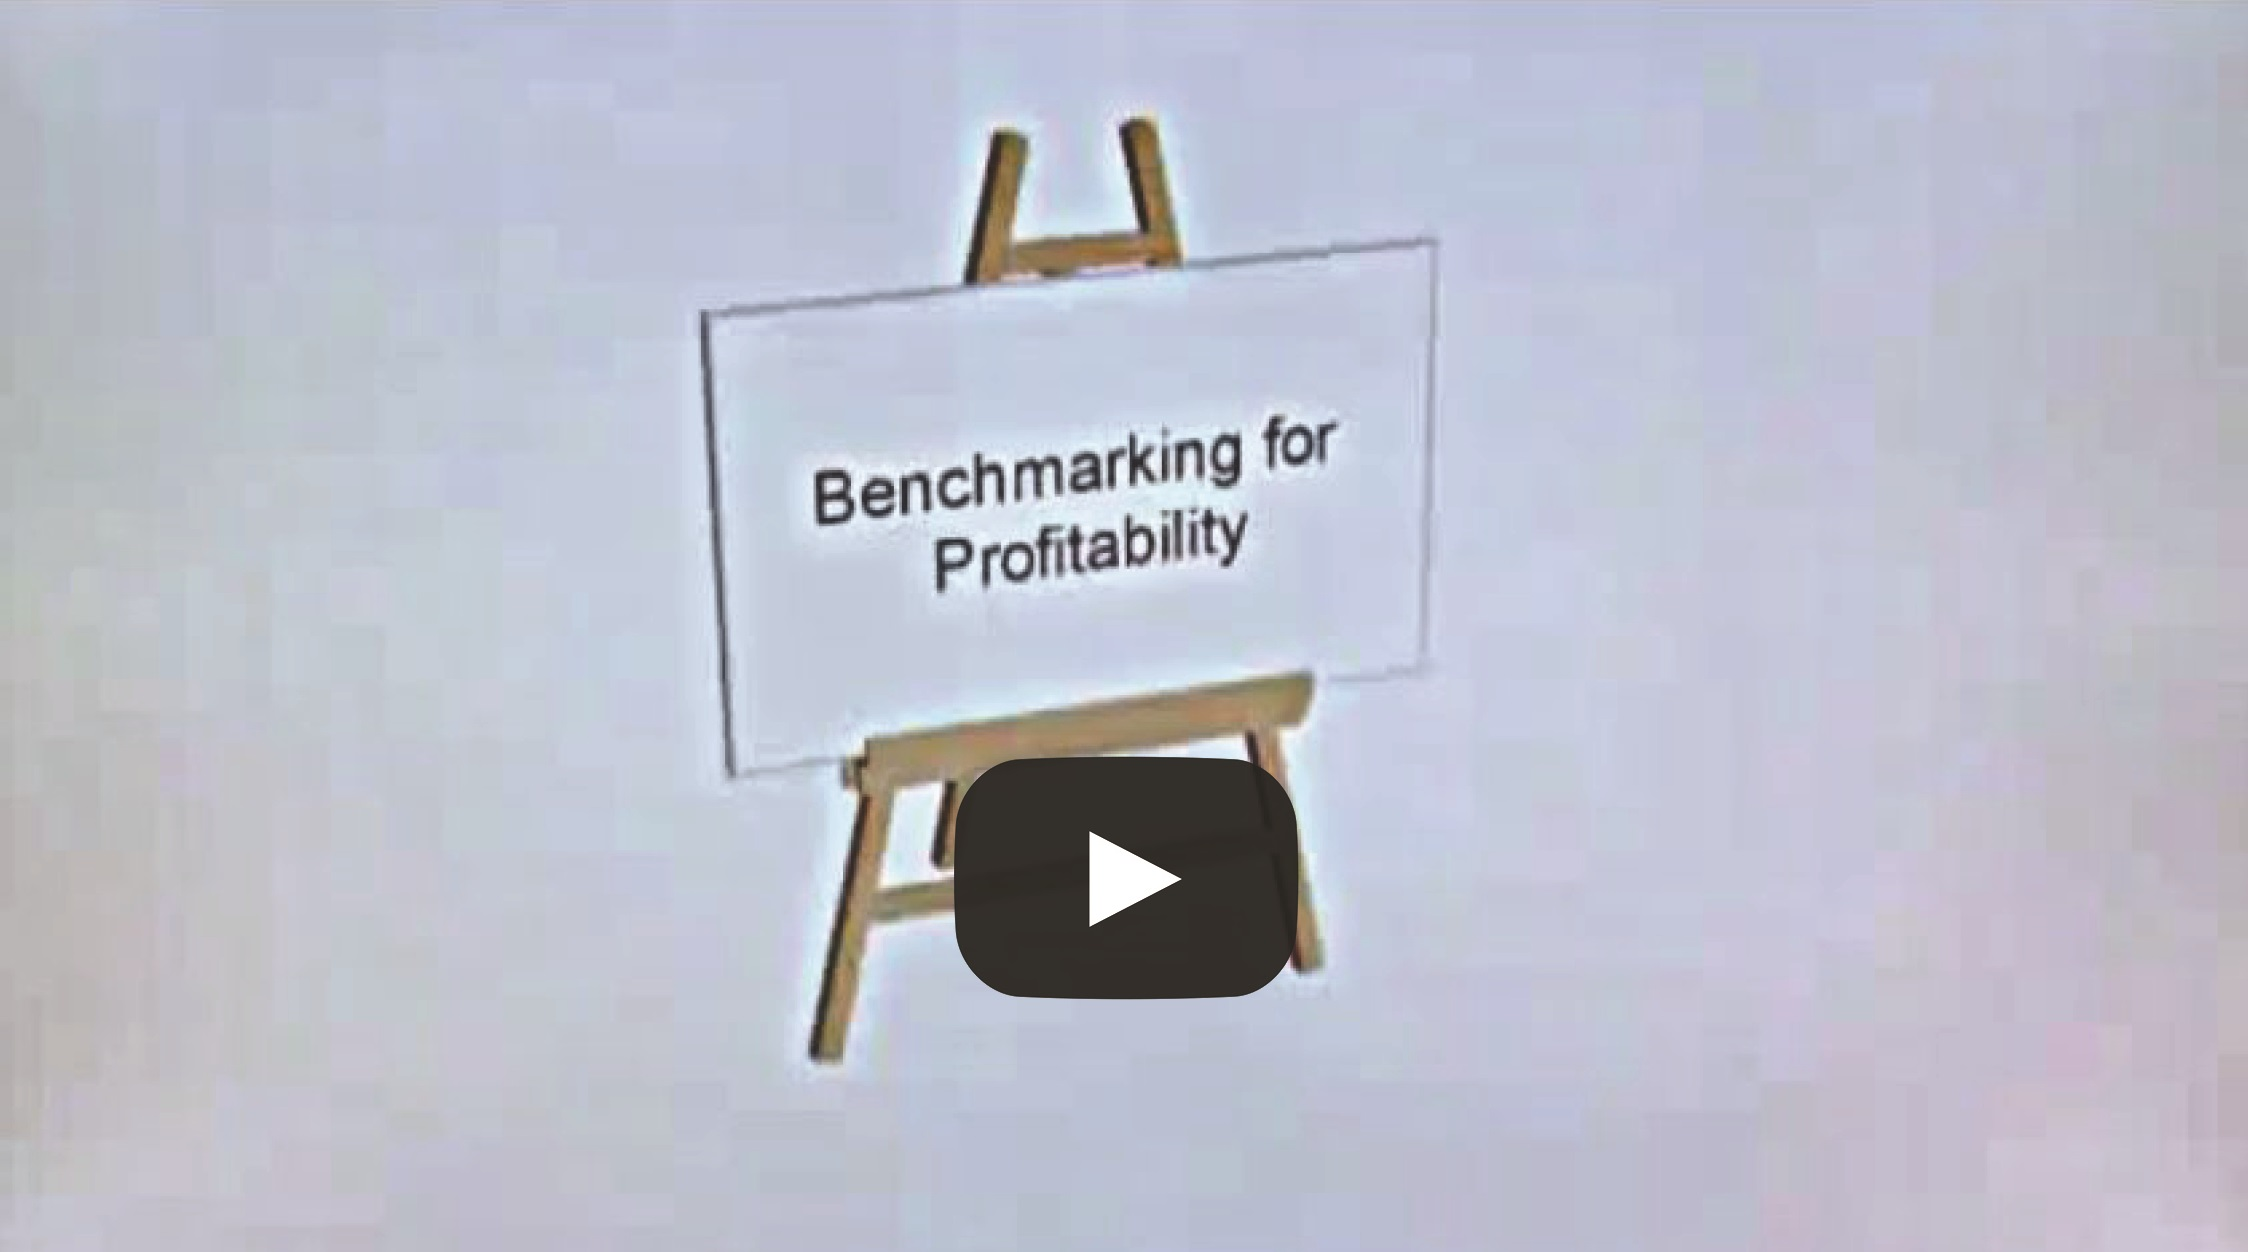 Benchmarking for Profitability